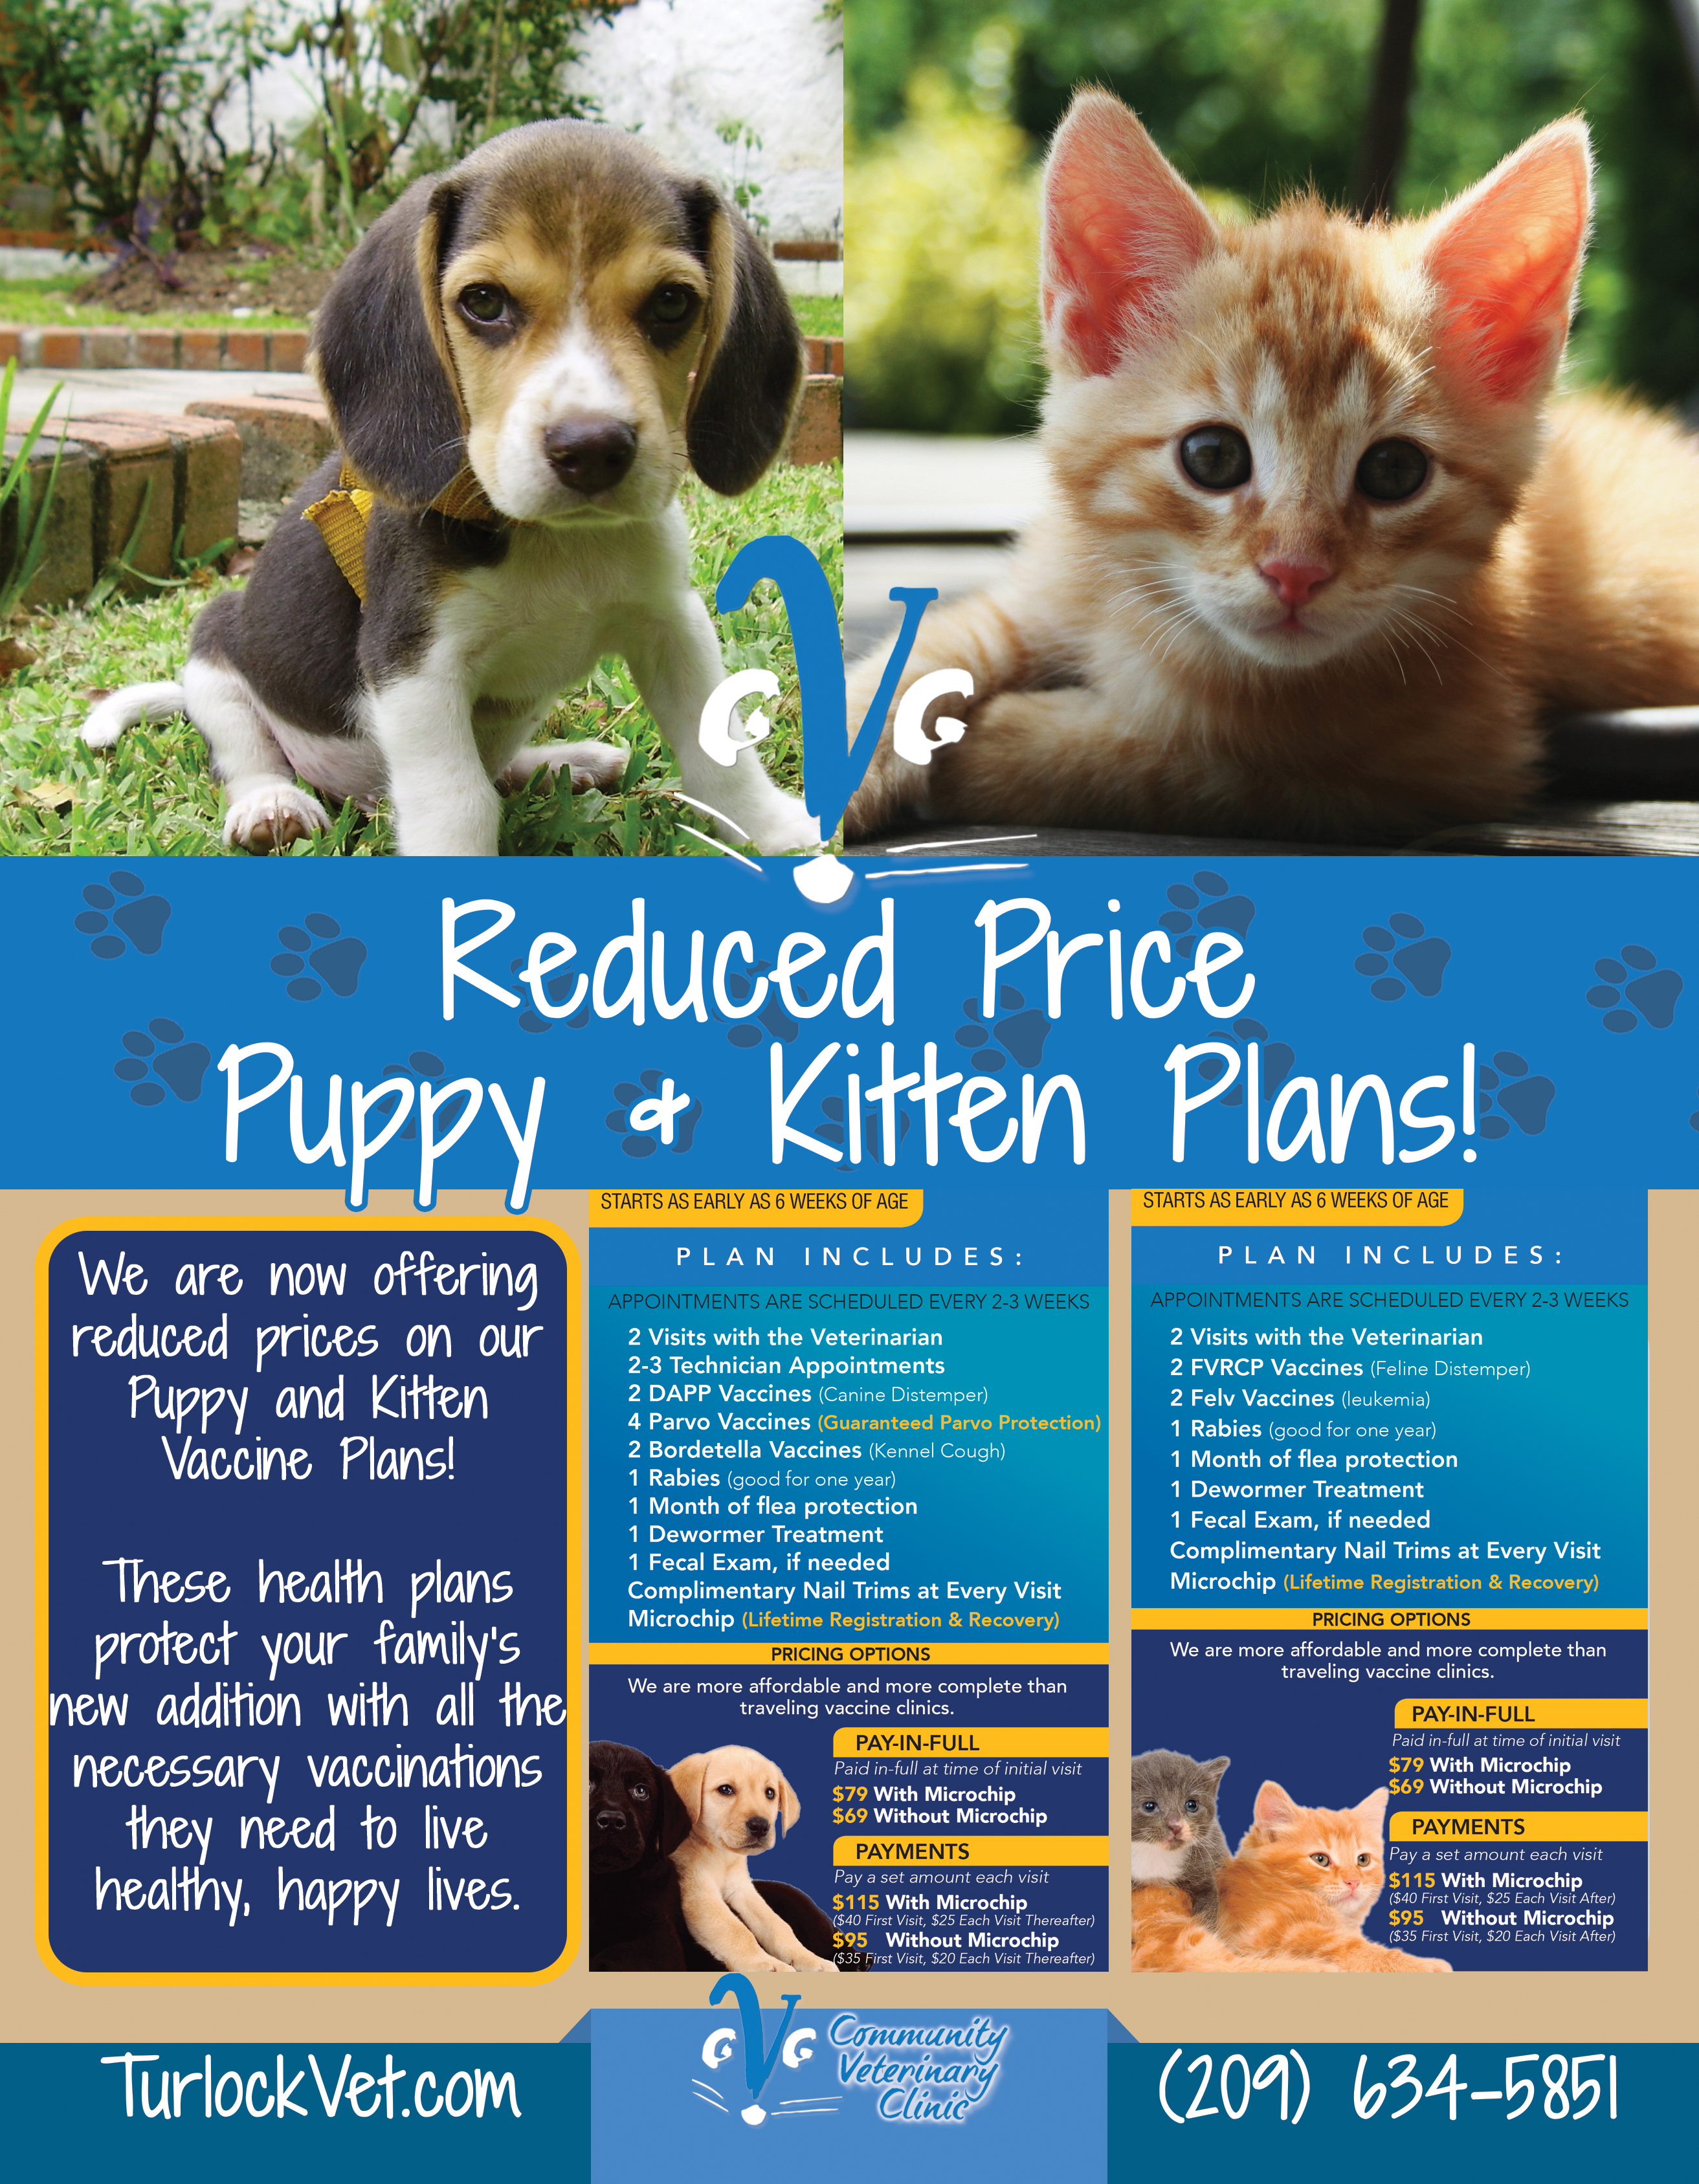 Puppy & Kitten Health Plans - Animal Hospital in Modesto, CA